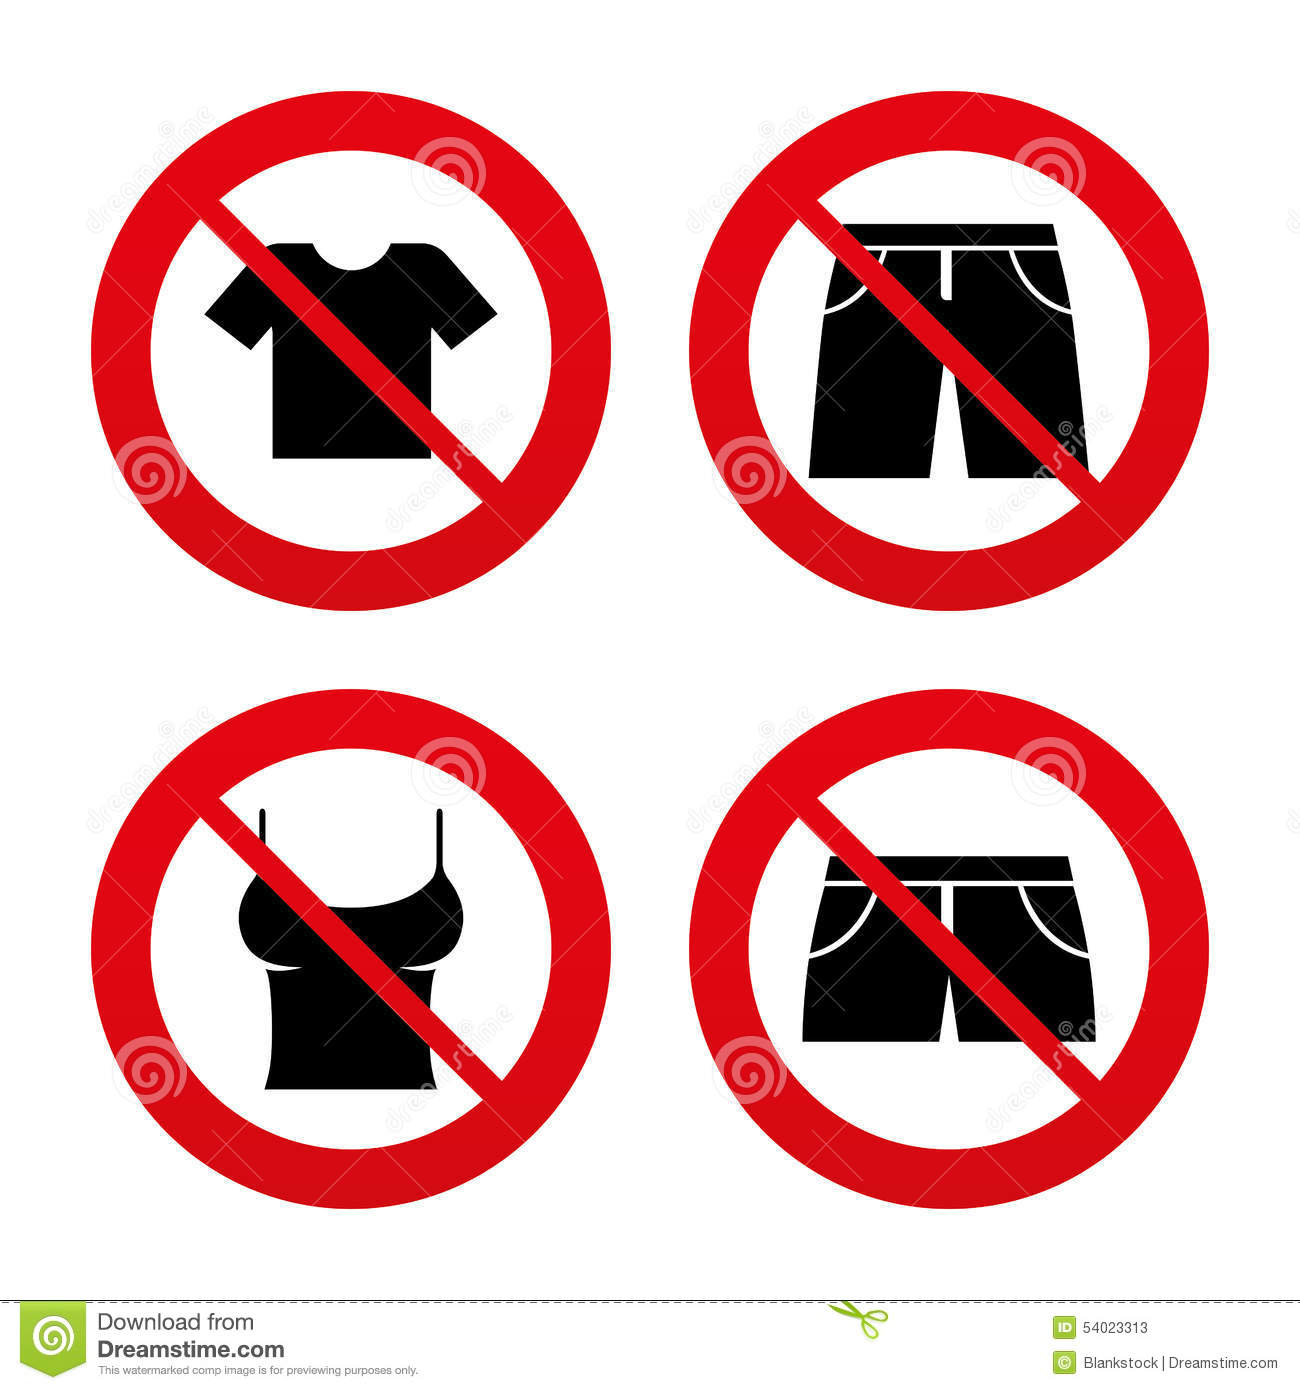 Clothes signs t shirt and pants with shorts stock vector clothes signs t shirt and pants with shorts buycottarizona Image collections